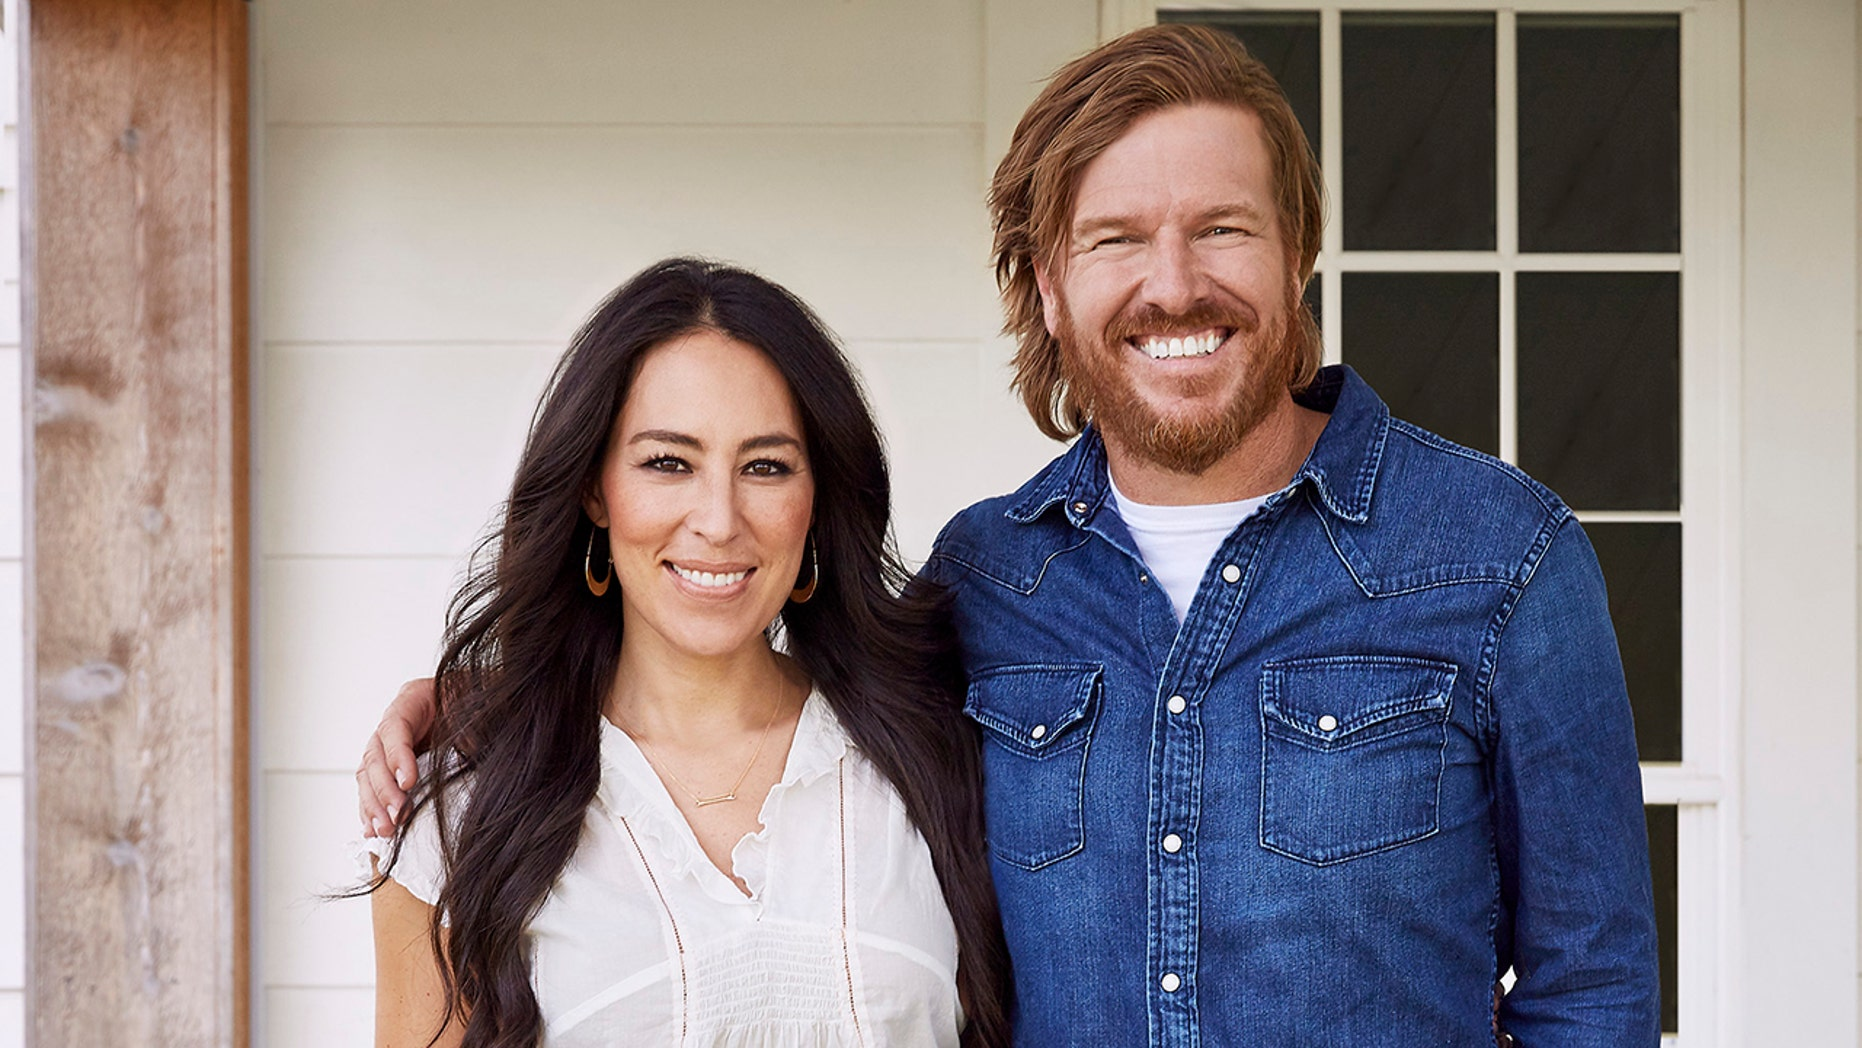 Chip and Joanna Gaines pose for a promotional photo. The 'Fixer Upper' stars are ending their hit show after Season 5.